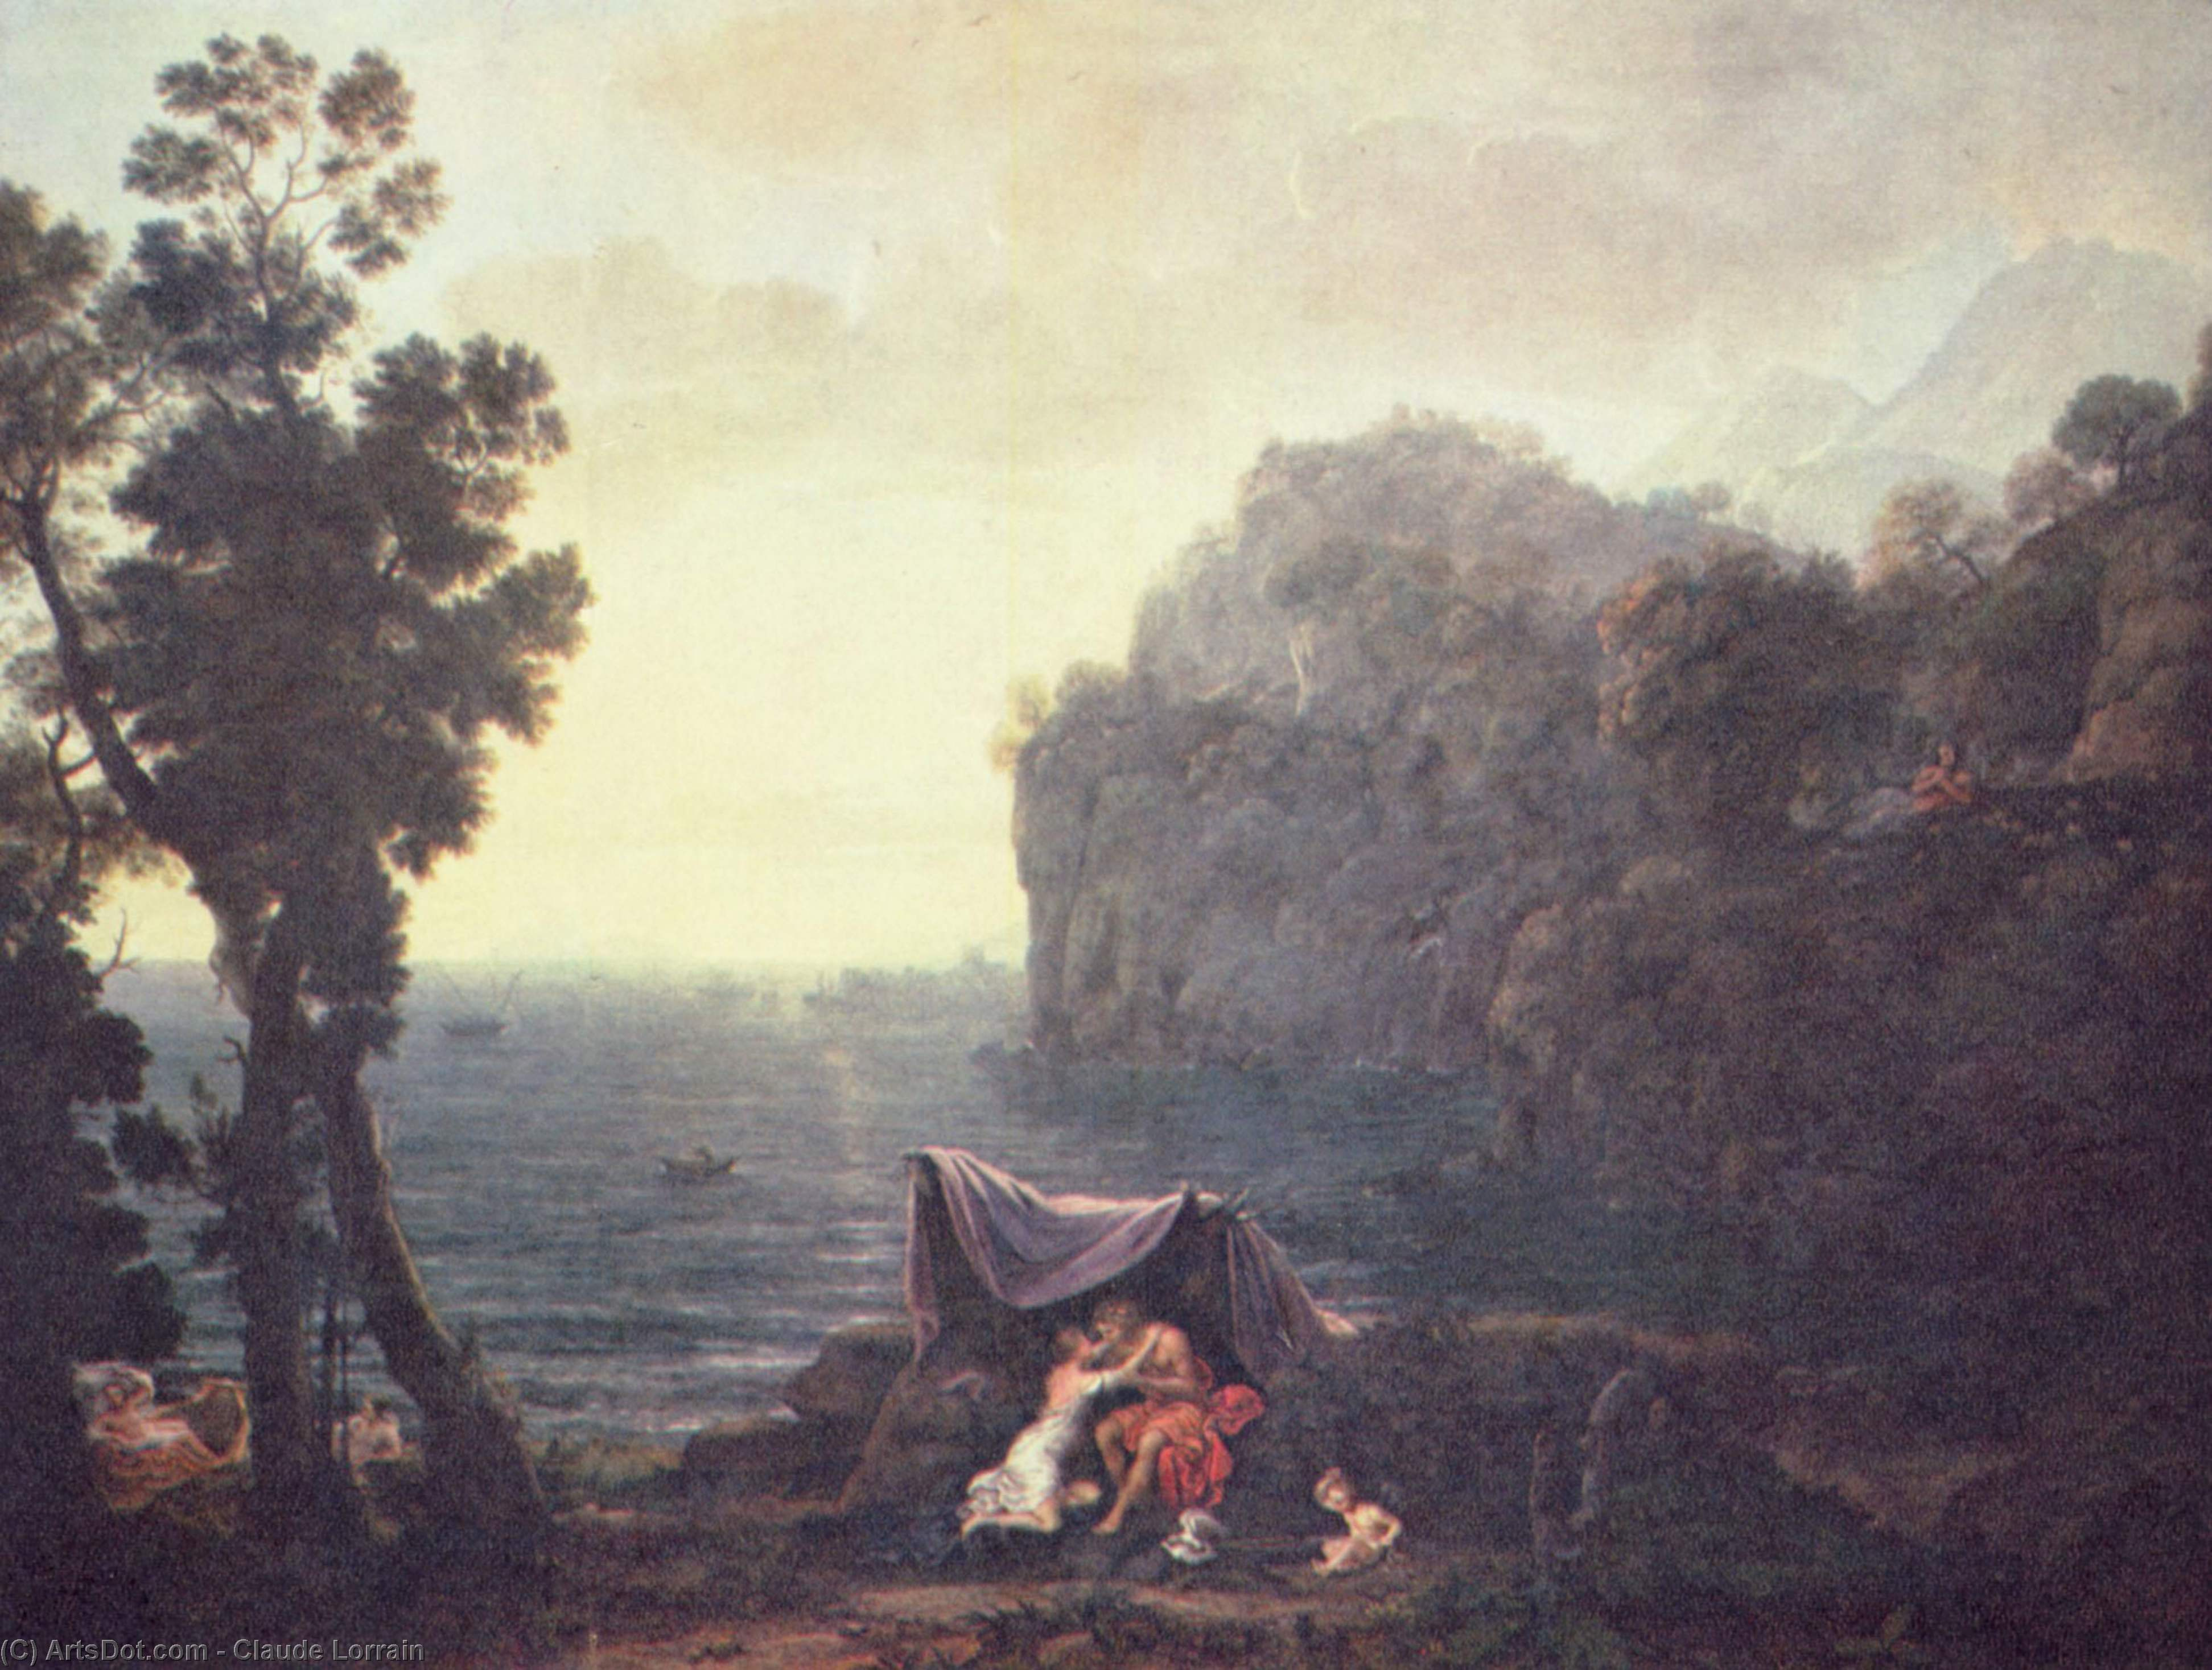 Acis and Galatea, Oil On Canvas by Claude Lorrain (Claude Gellée)